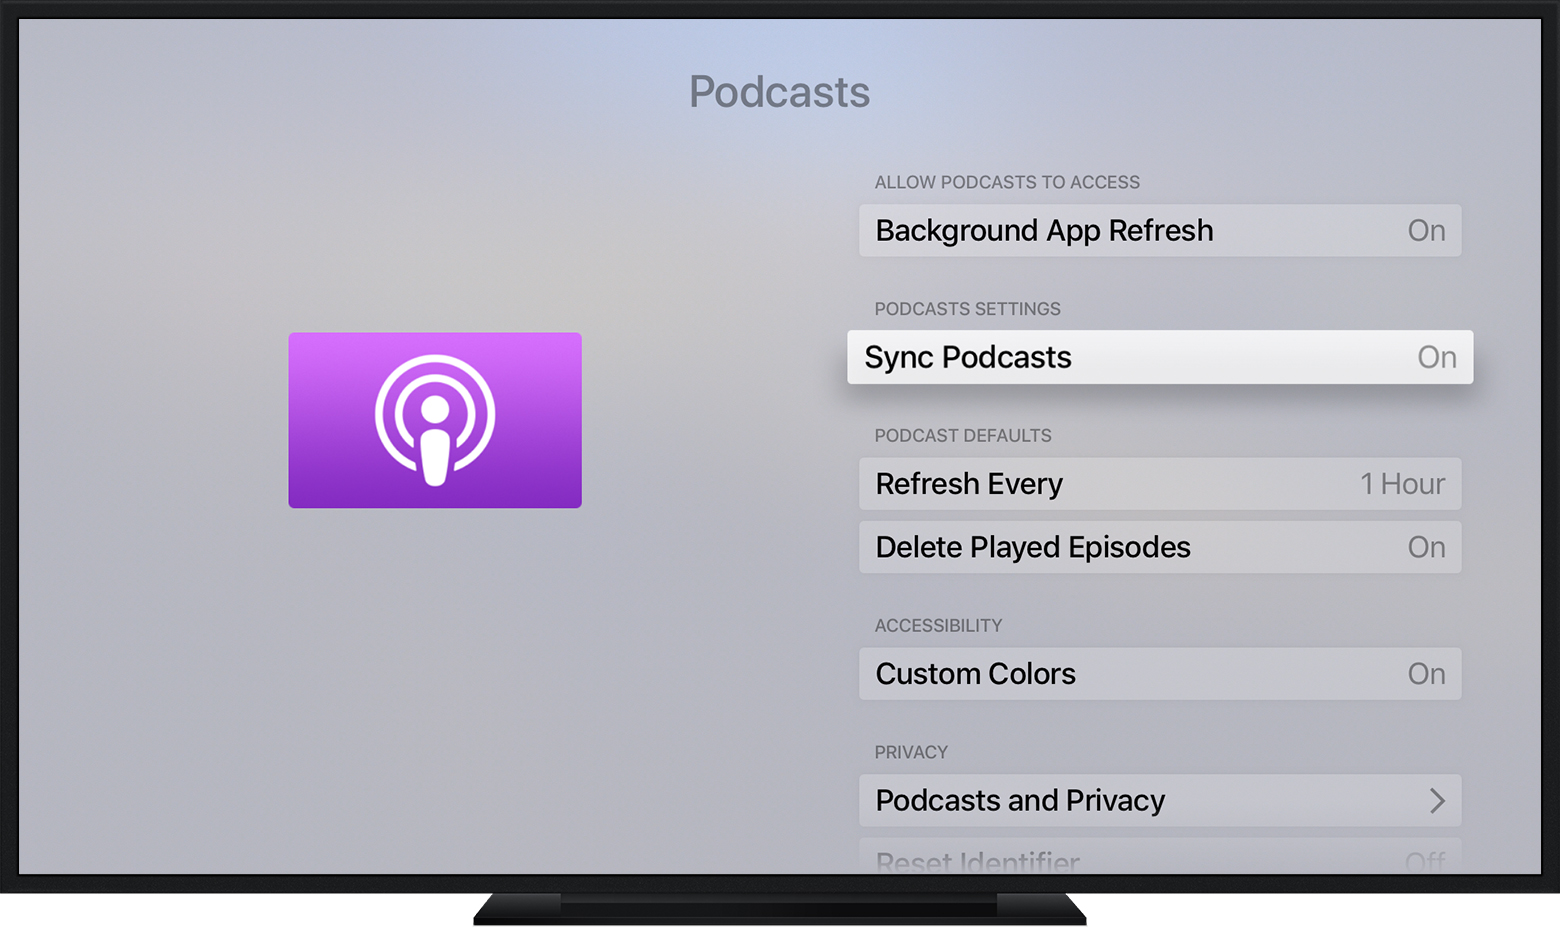 turn on sync podcasts